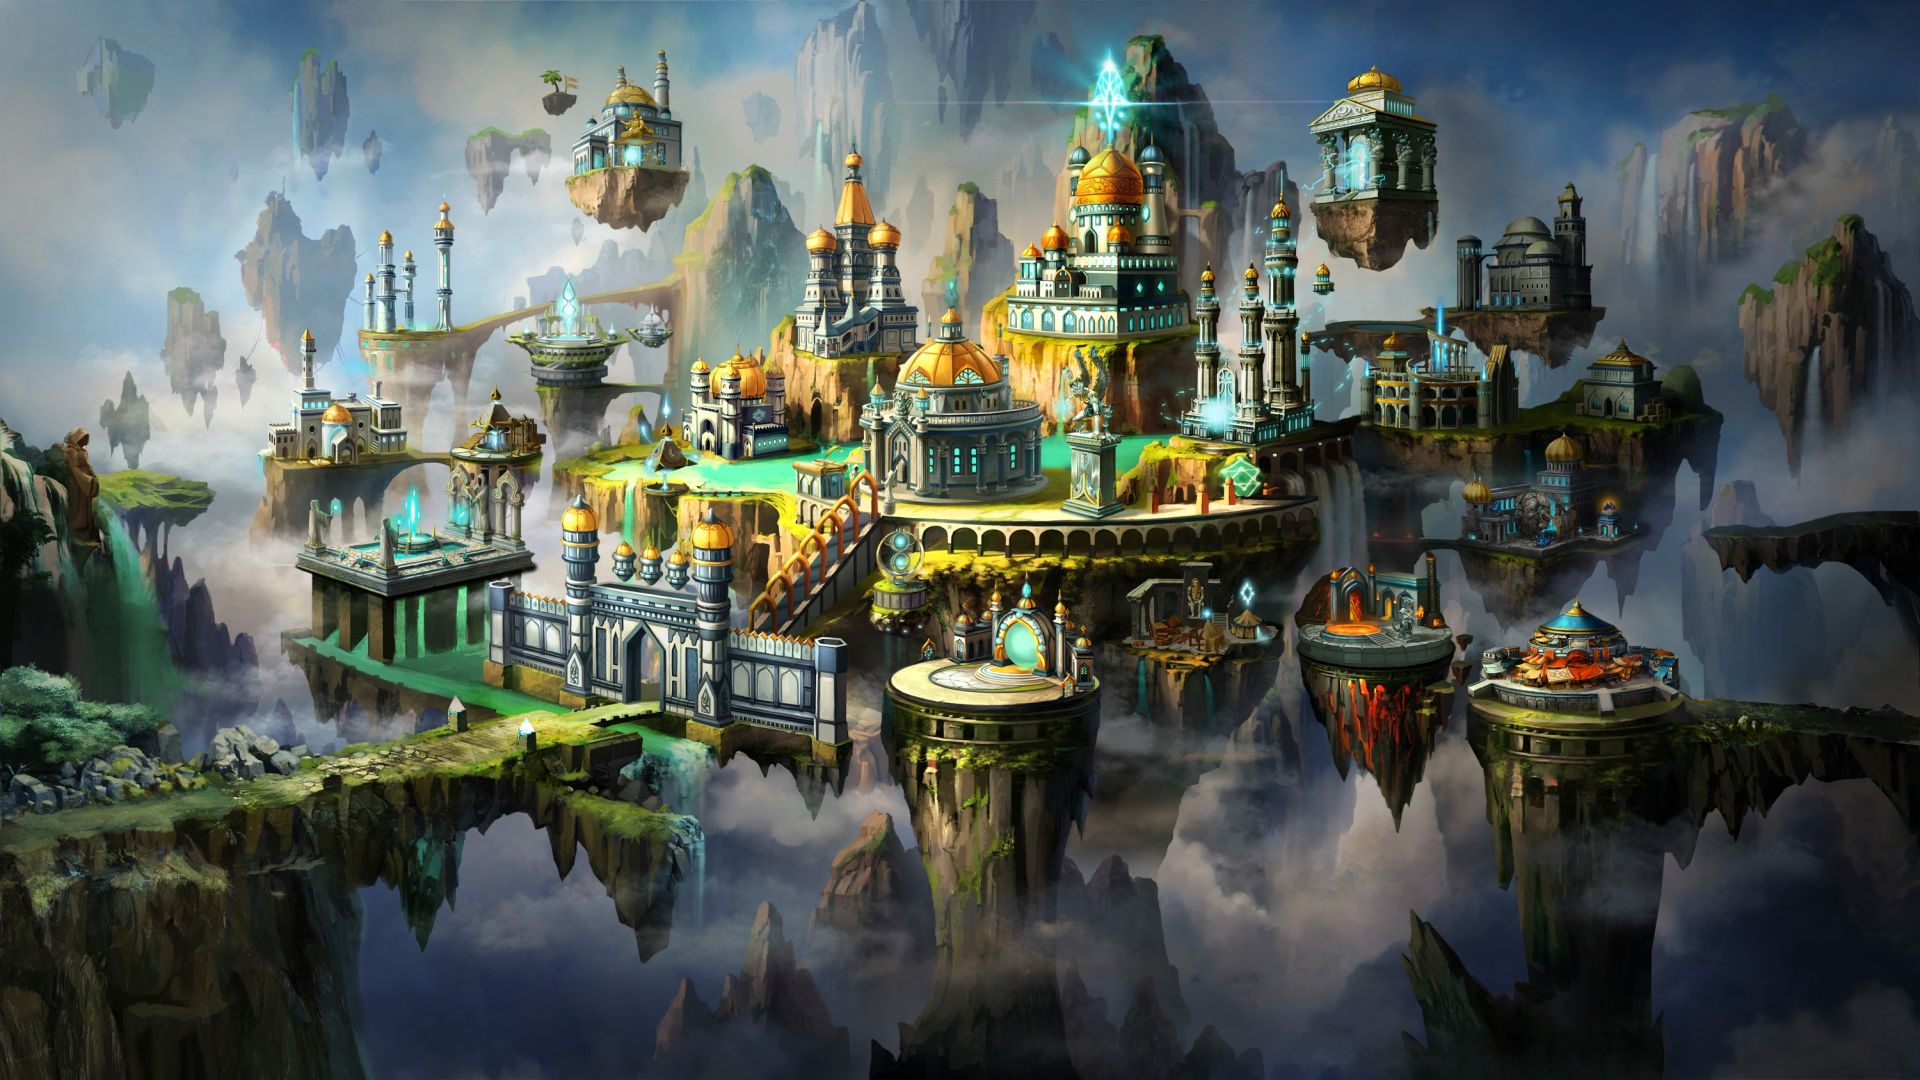 Download Wallpaper 1920x1080 Might Magic Heroes Vii Might And Magic X City Art Full Hd 1080p Hd Background